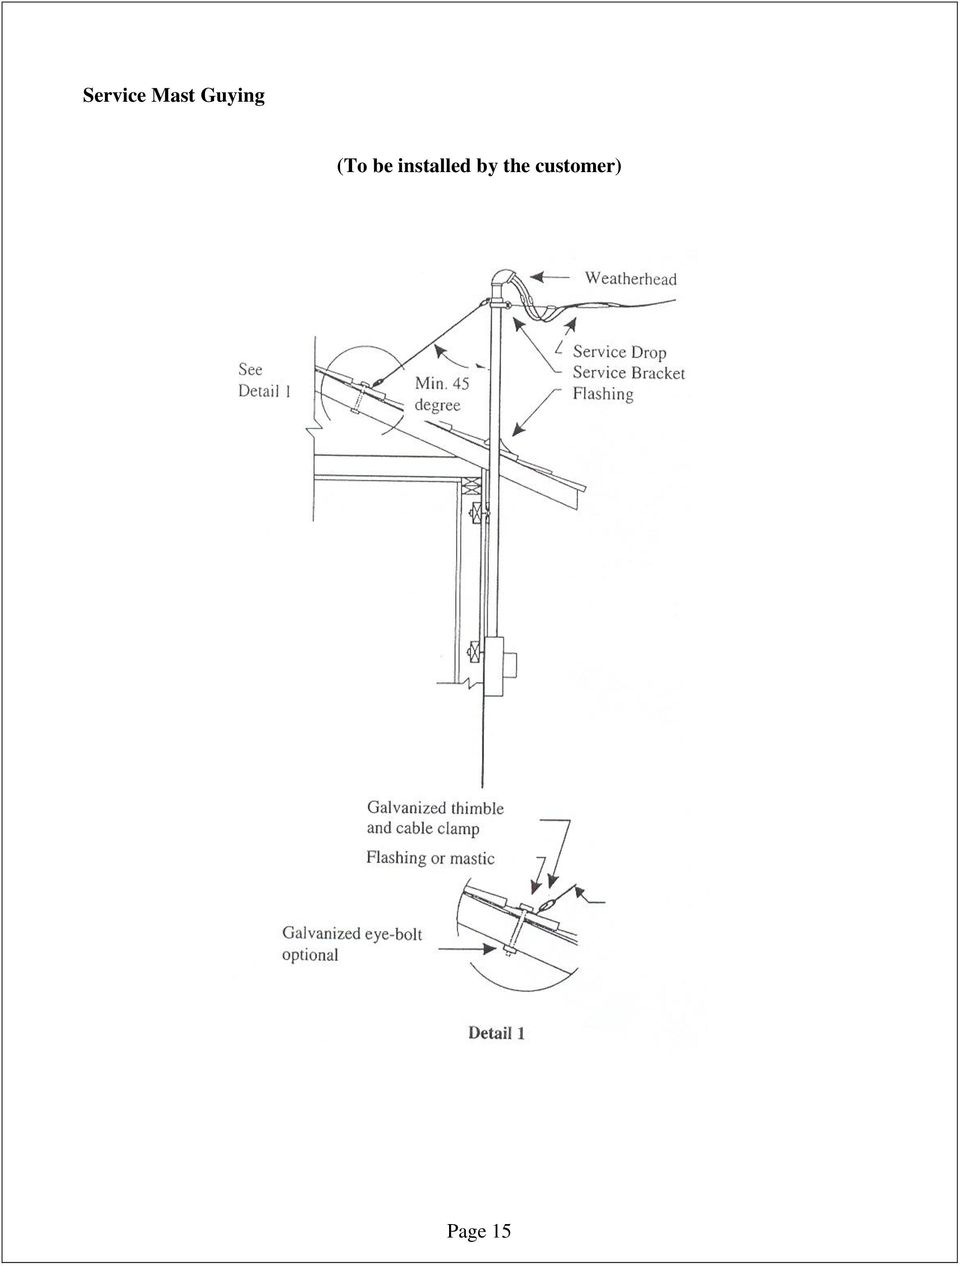 Fine Standoff Service Entrance Wire Holder Gift - Electrical Diagram ...